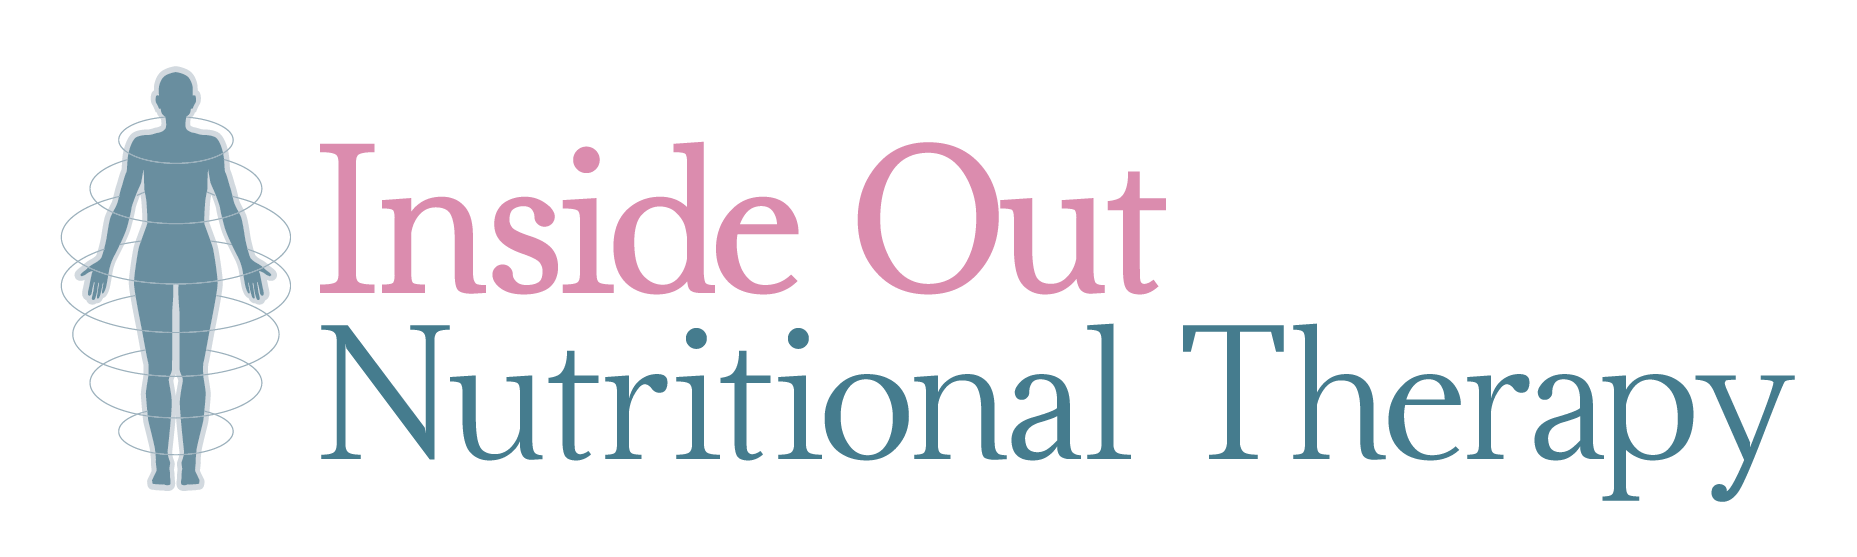 Inside Out Nutritional Therapy